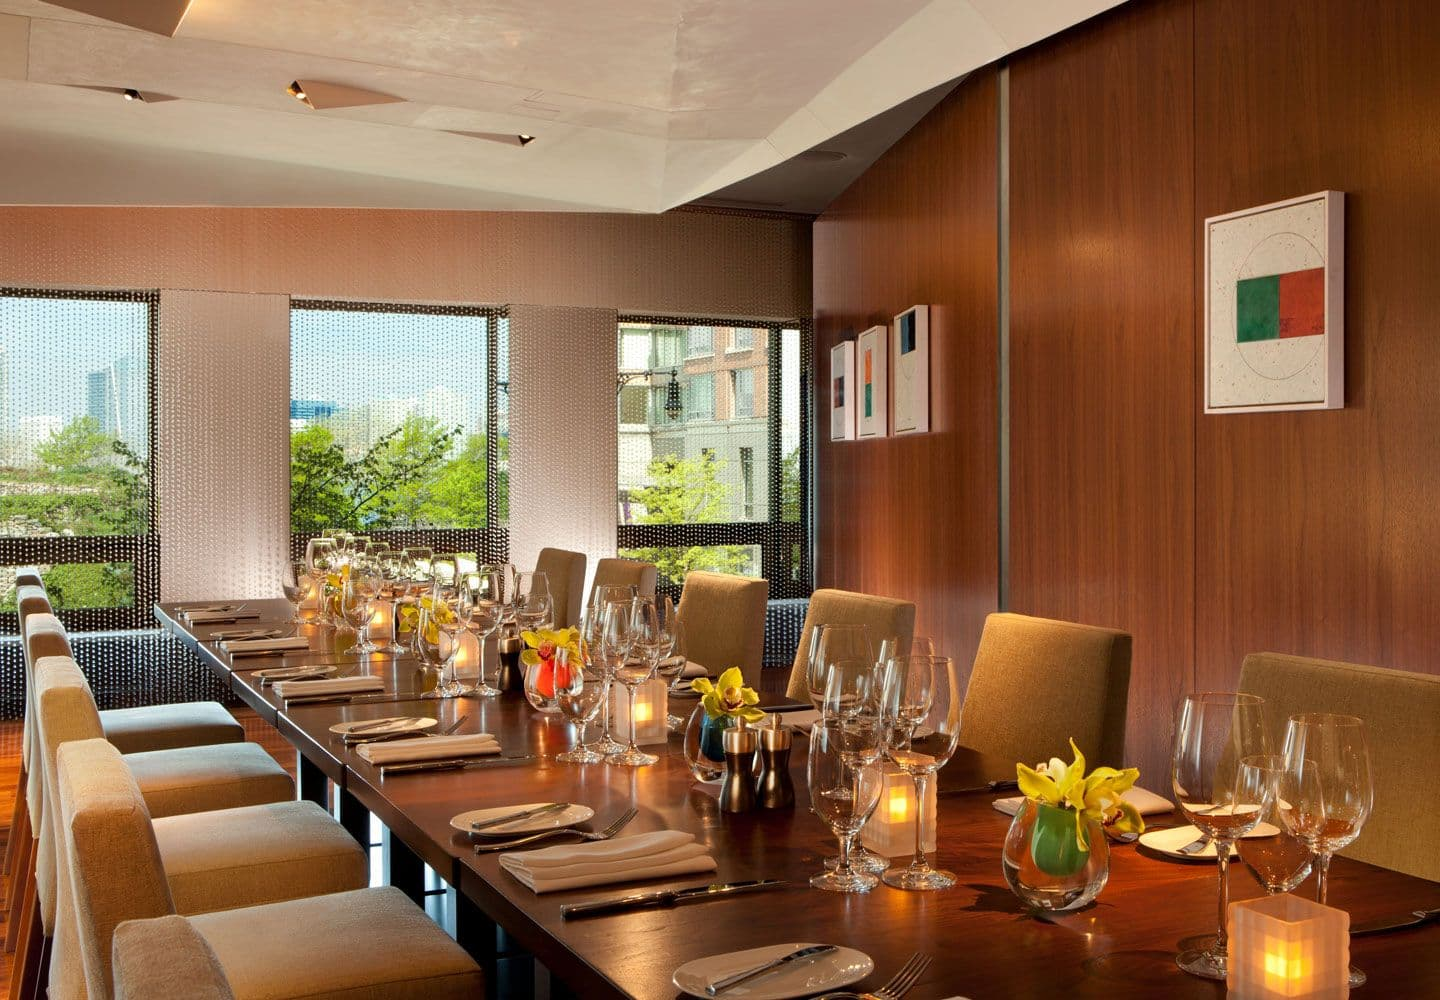 ATRIO Wine Bar | Restaurant Offers Space For Private Events In The Private Dining  Room And At The Wine Bar.